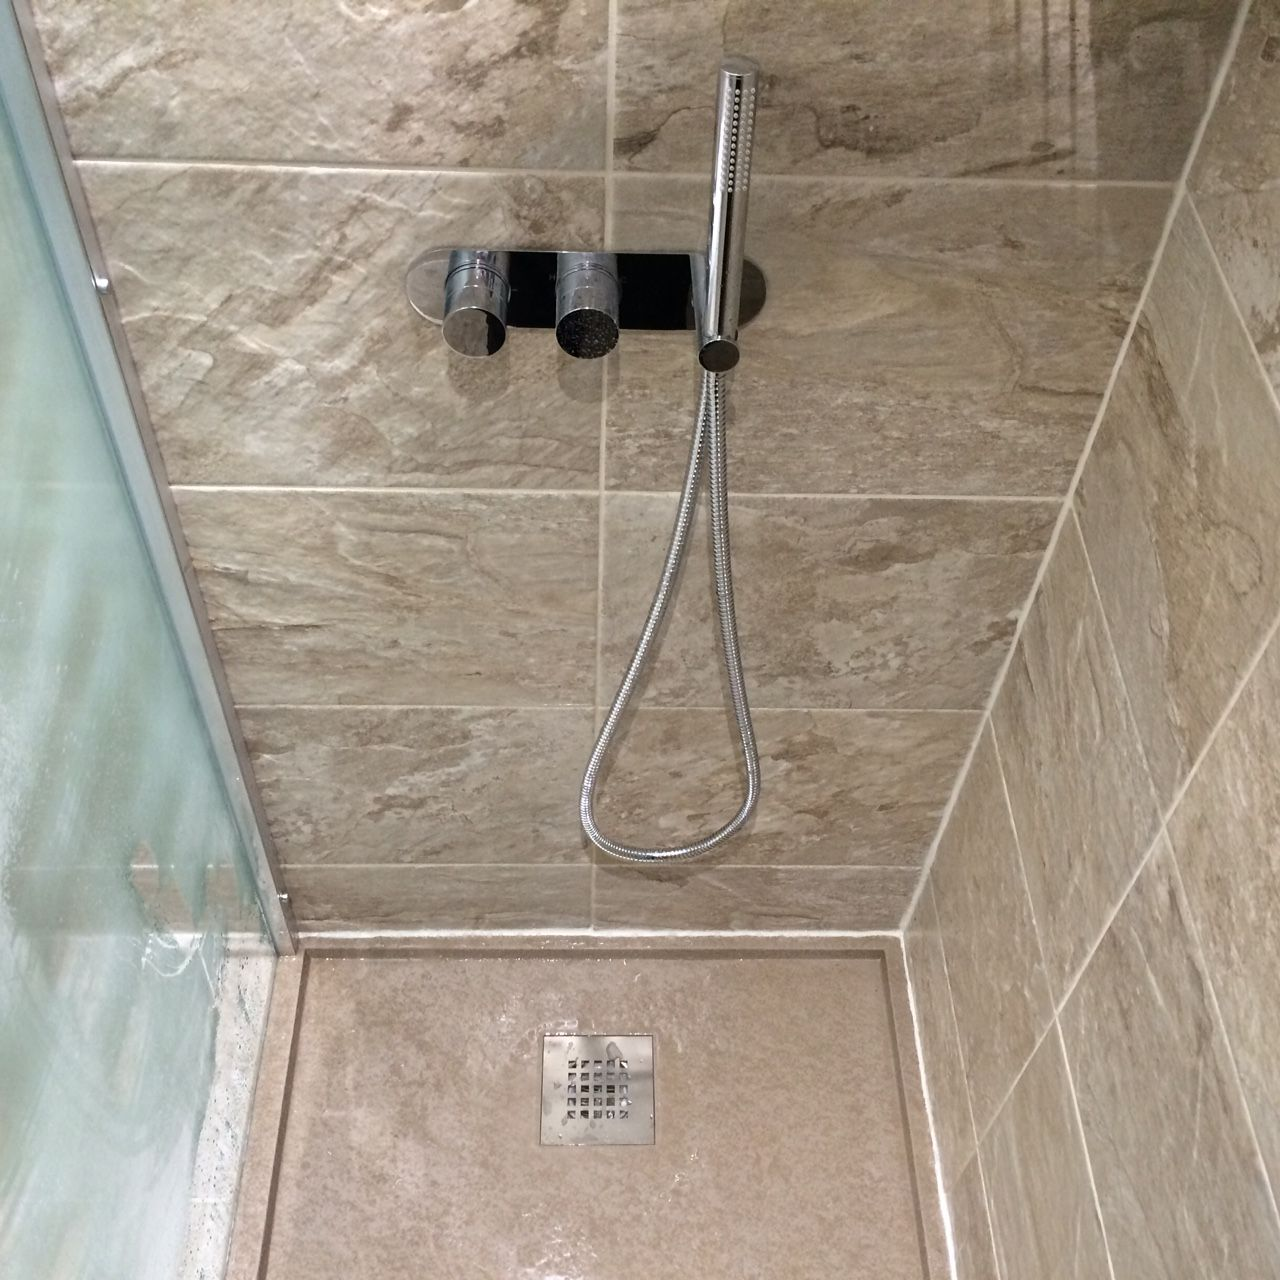 Tiled Shower Tray shower tray - fiora, silex tray, cappucino. shower valve